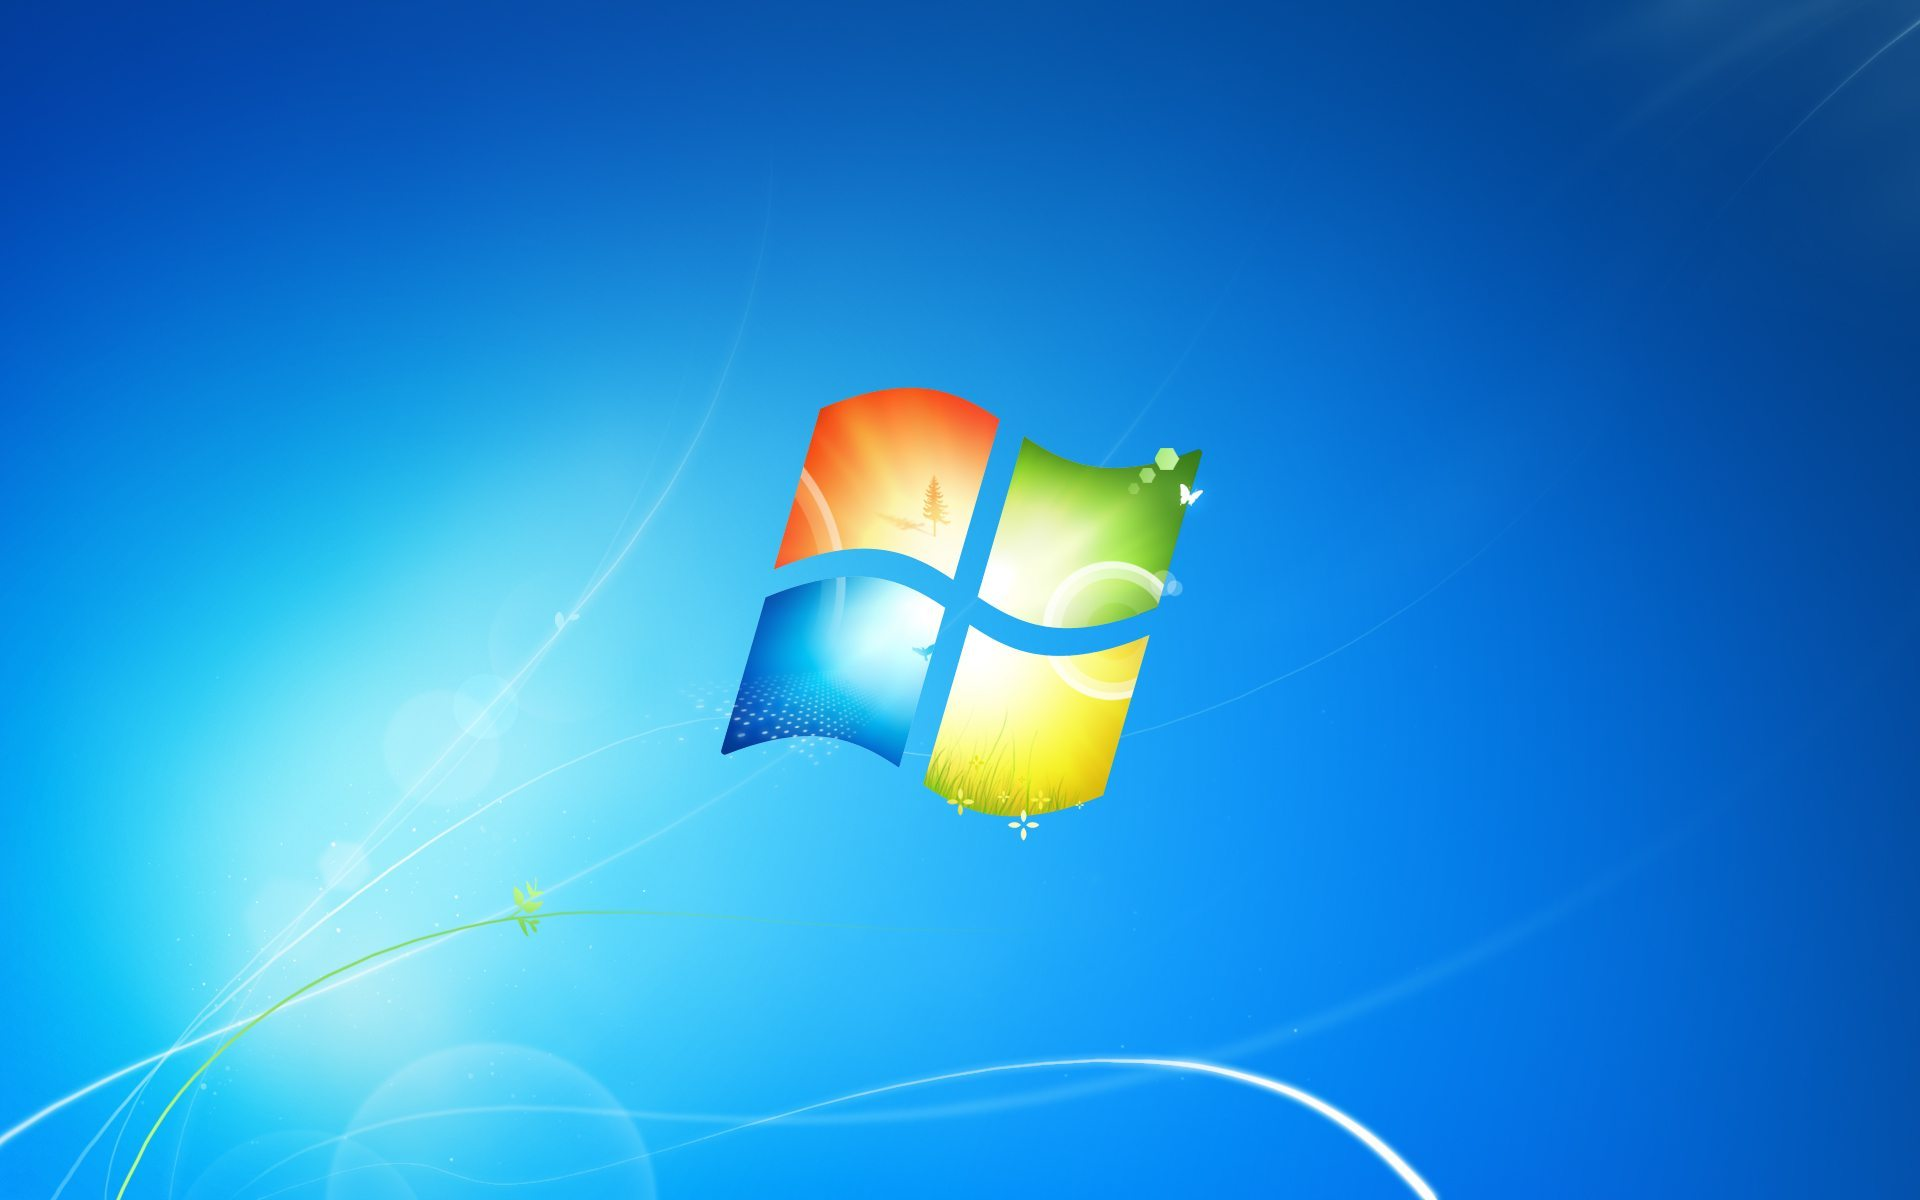 Official Windows 7 Wallpapers   WPArena Windows 7 Wallpaper